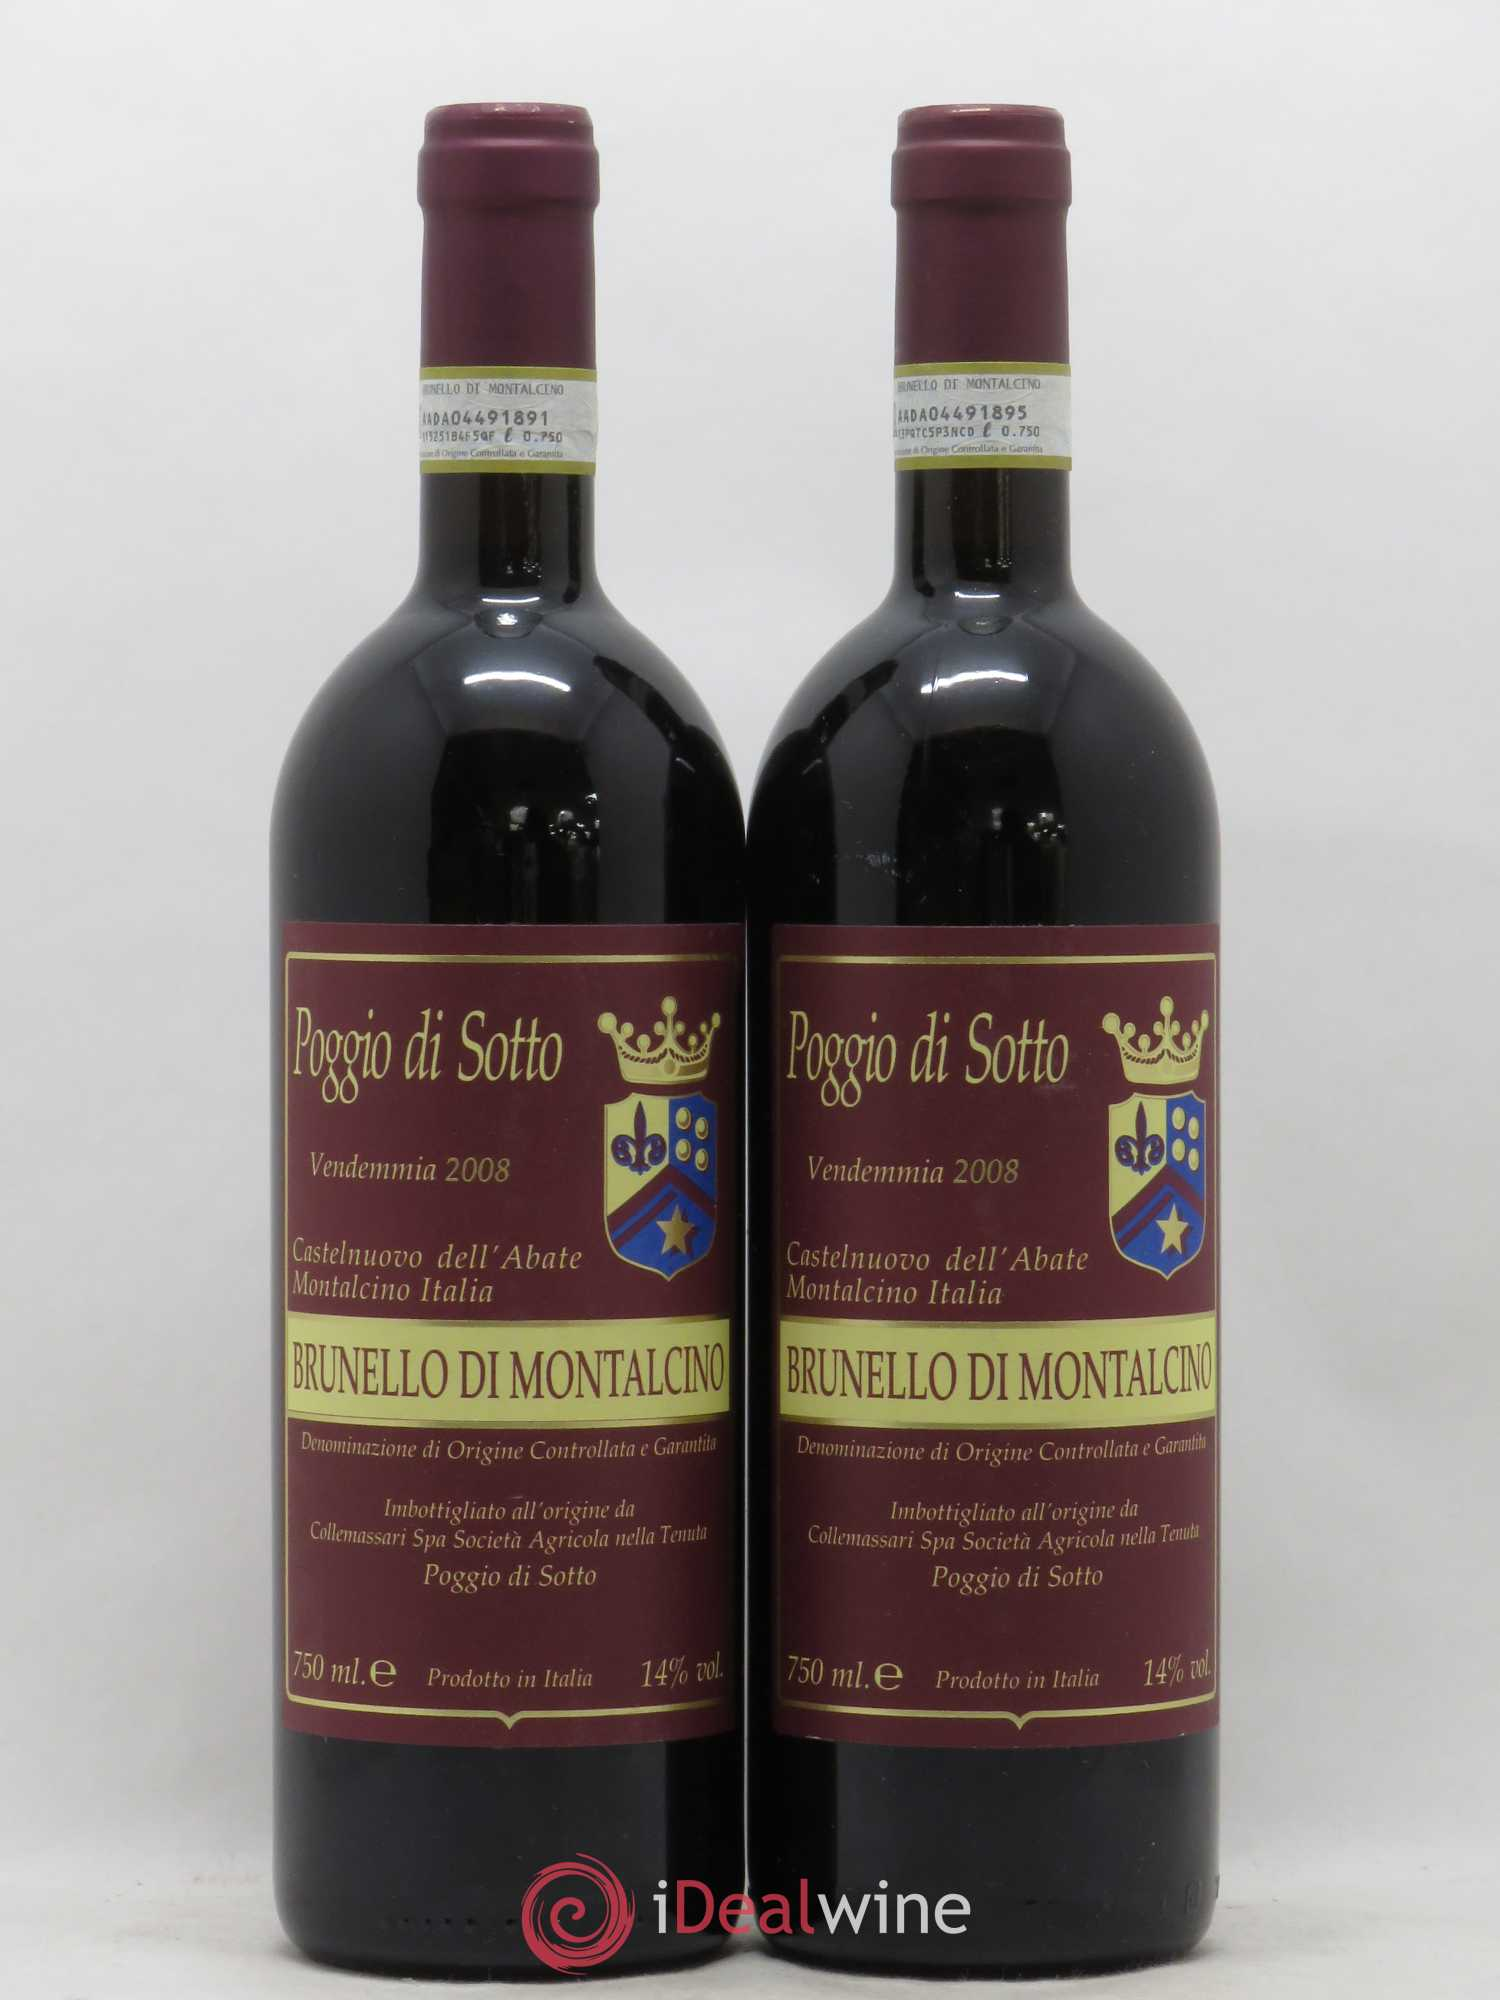 Brunello di Montalcino Poggio di Sotto  2008 - Lot of 2 Bottles